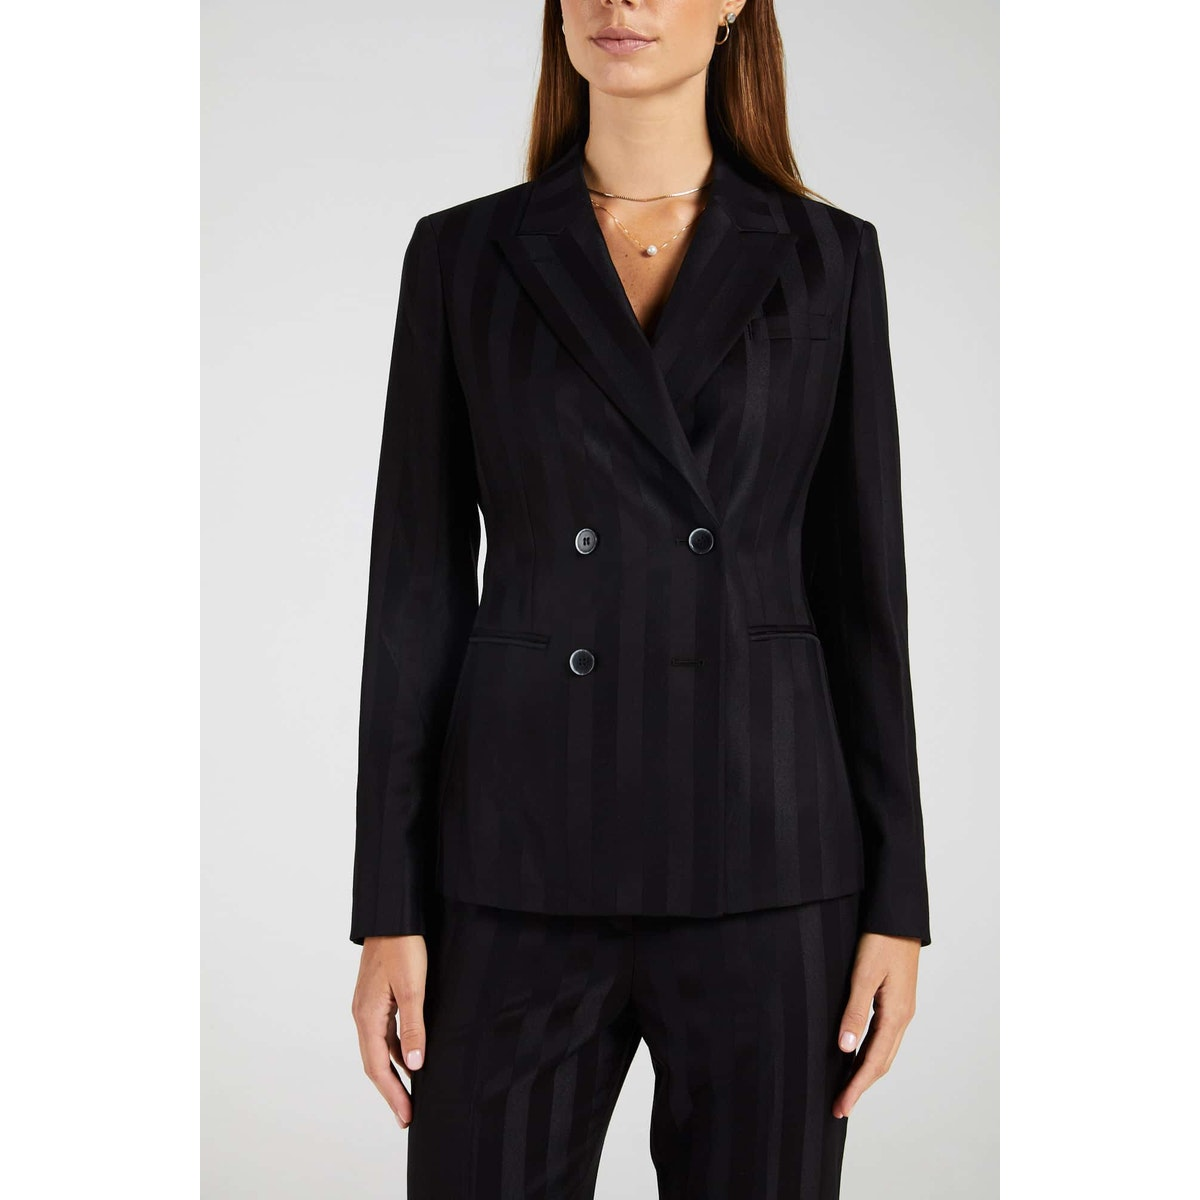 InStitchu Collection The Wylie Thick Black Pinstripe Jacket